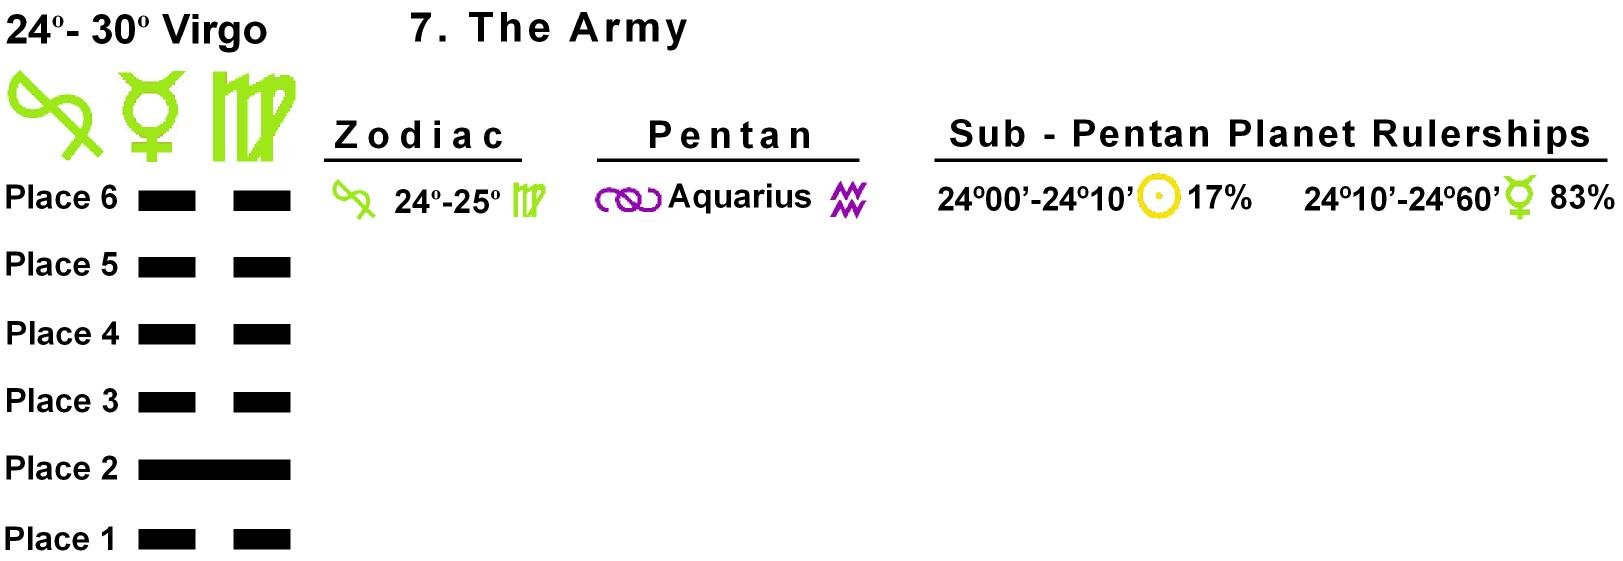 Pent-lines-06VI 24-25 Hx-07 The Army